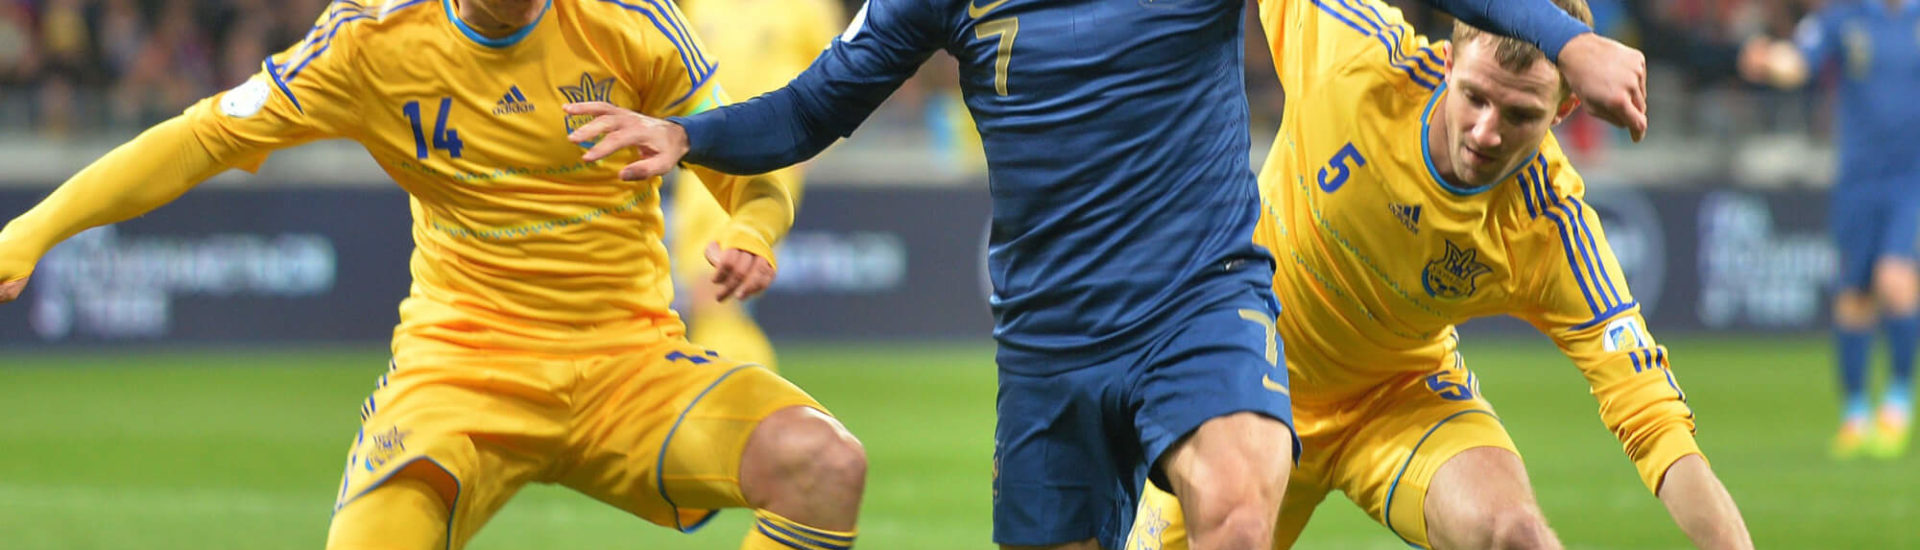 Ukranian Football Fans Arrested at Iceland- Ukraine Match Last Night